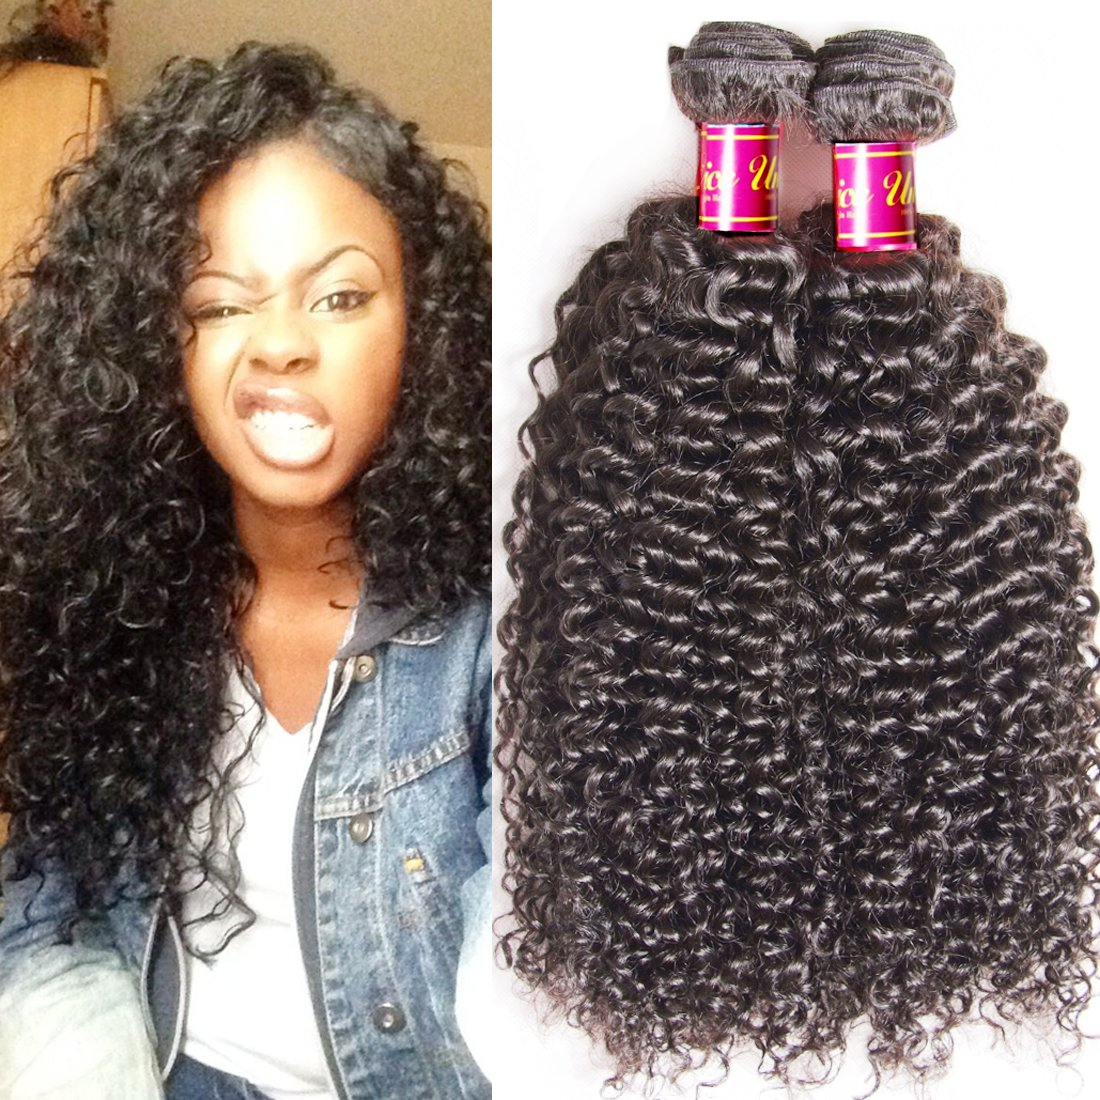 Amazon unice hair brazilian curly hair extenisons 3 bundles amazon unice hair brazilian curly hair extenisons 3 bundles 16 18 20inch unprocessed 6a virgin human hair curly weave weft natural color beauty pmusecretfo Gallery